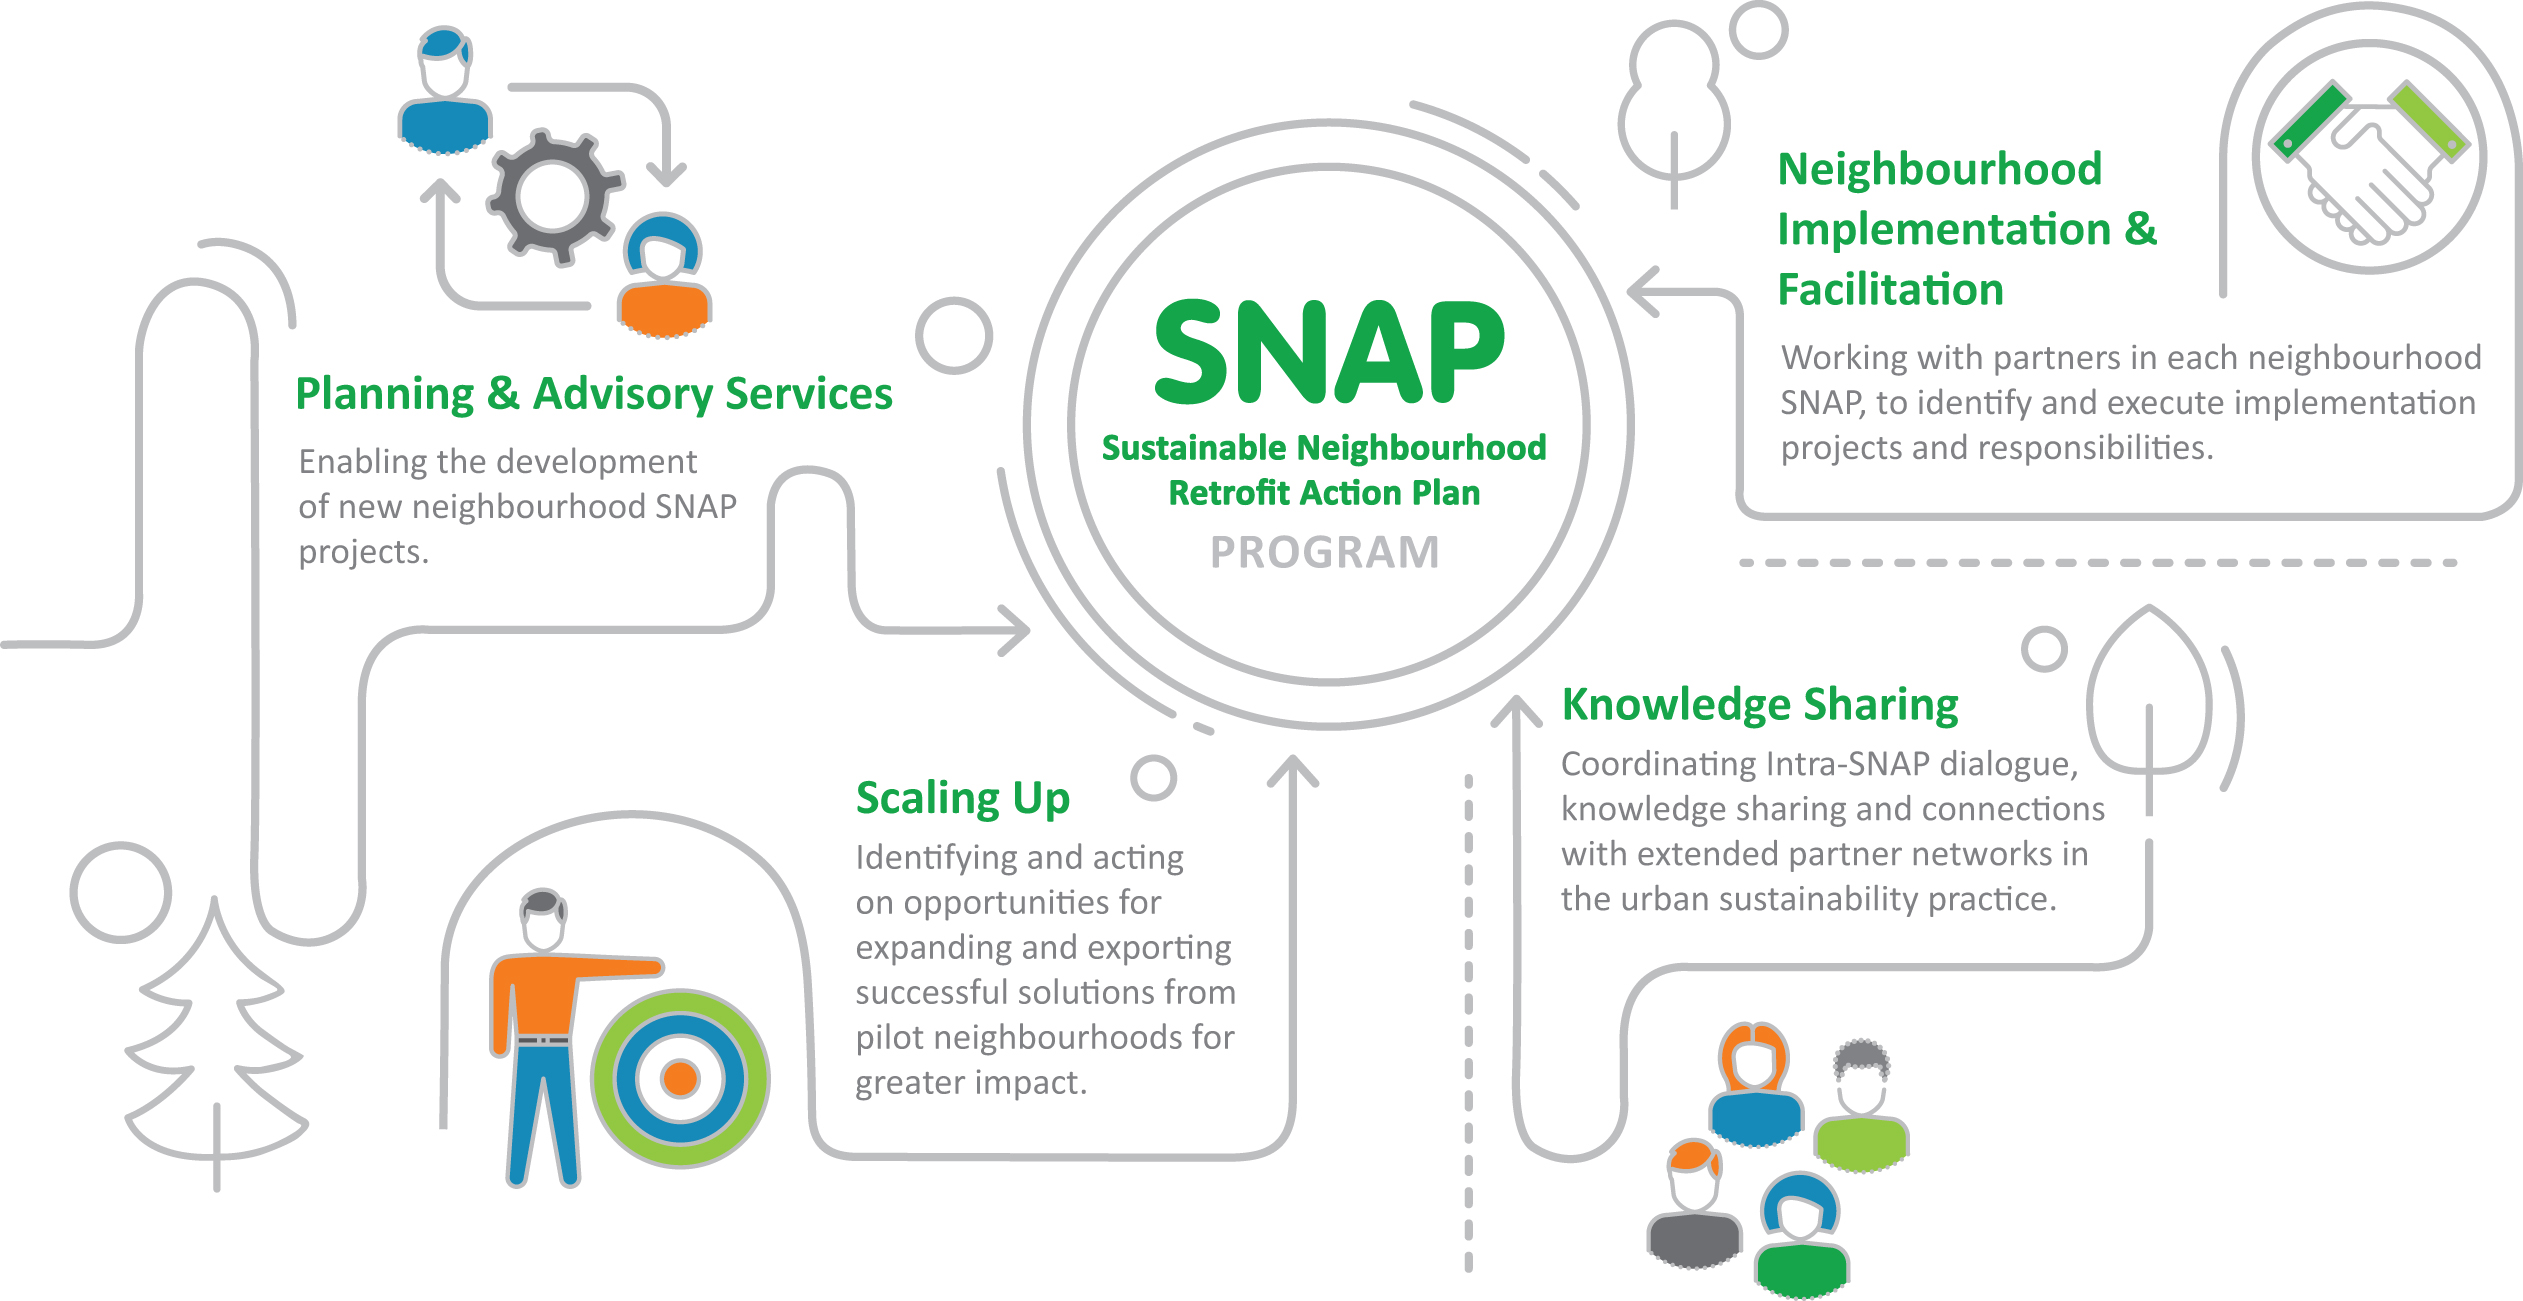 SNAP program diagram